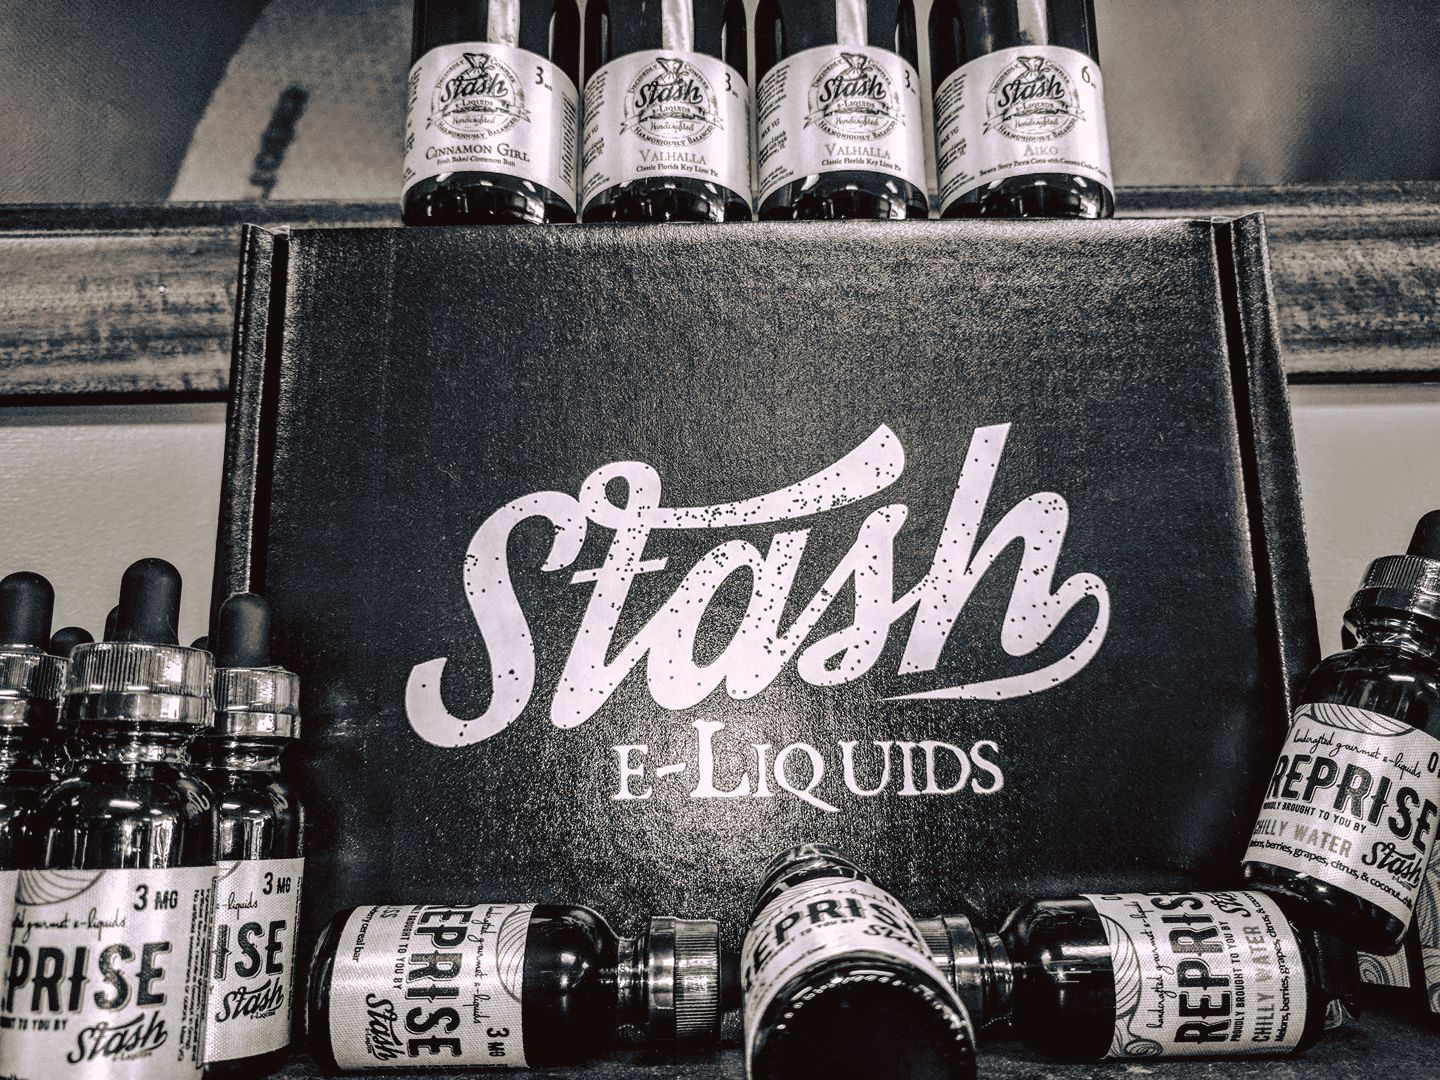 Stash, E-Liquid, vape shop, palm bay, Dripped Out Vapers, vaping, vaping equipment